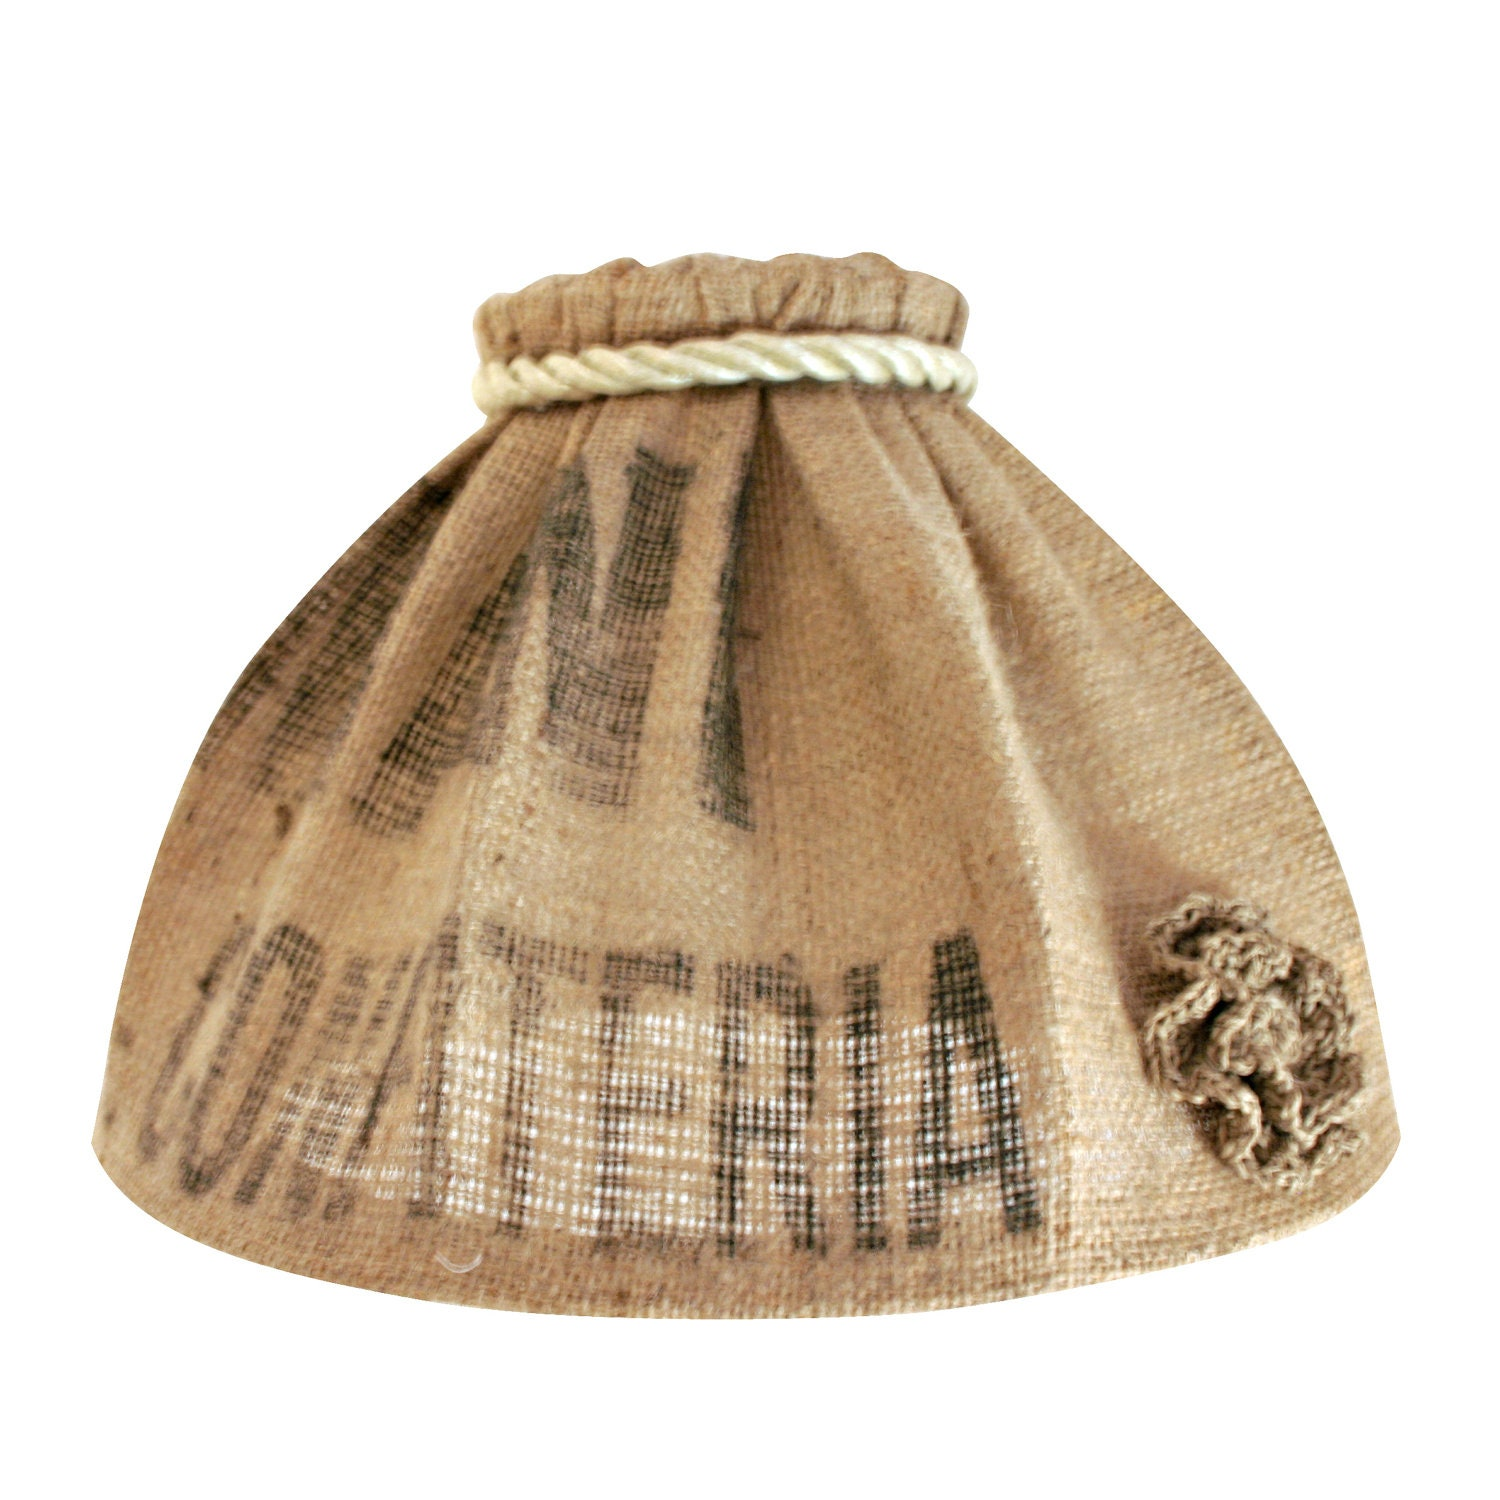 Very Cute Burlap Lamp Shade Made Of Recycled Materials By